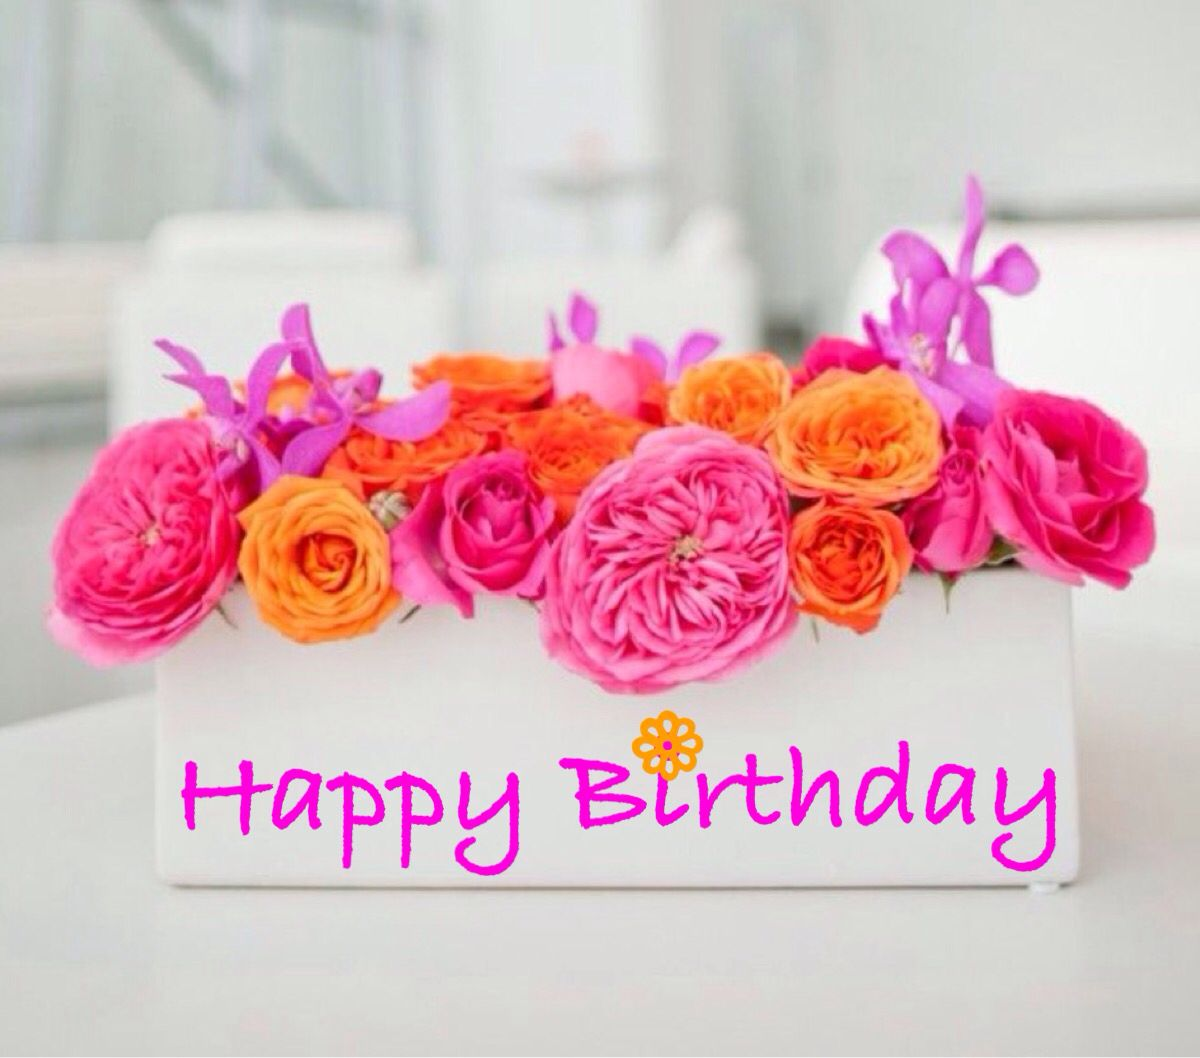 Birthday Flowers Images With Quotes: Happy Birthday €�